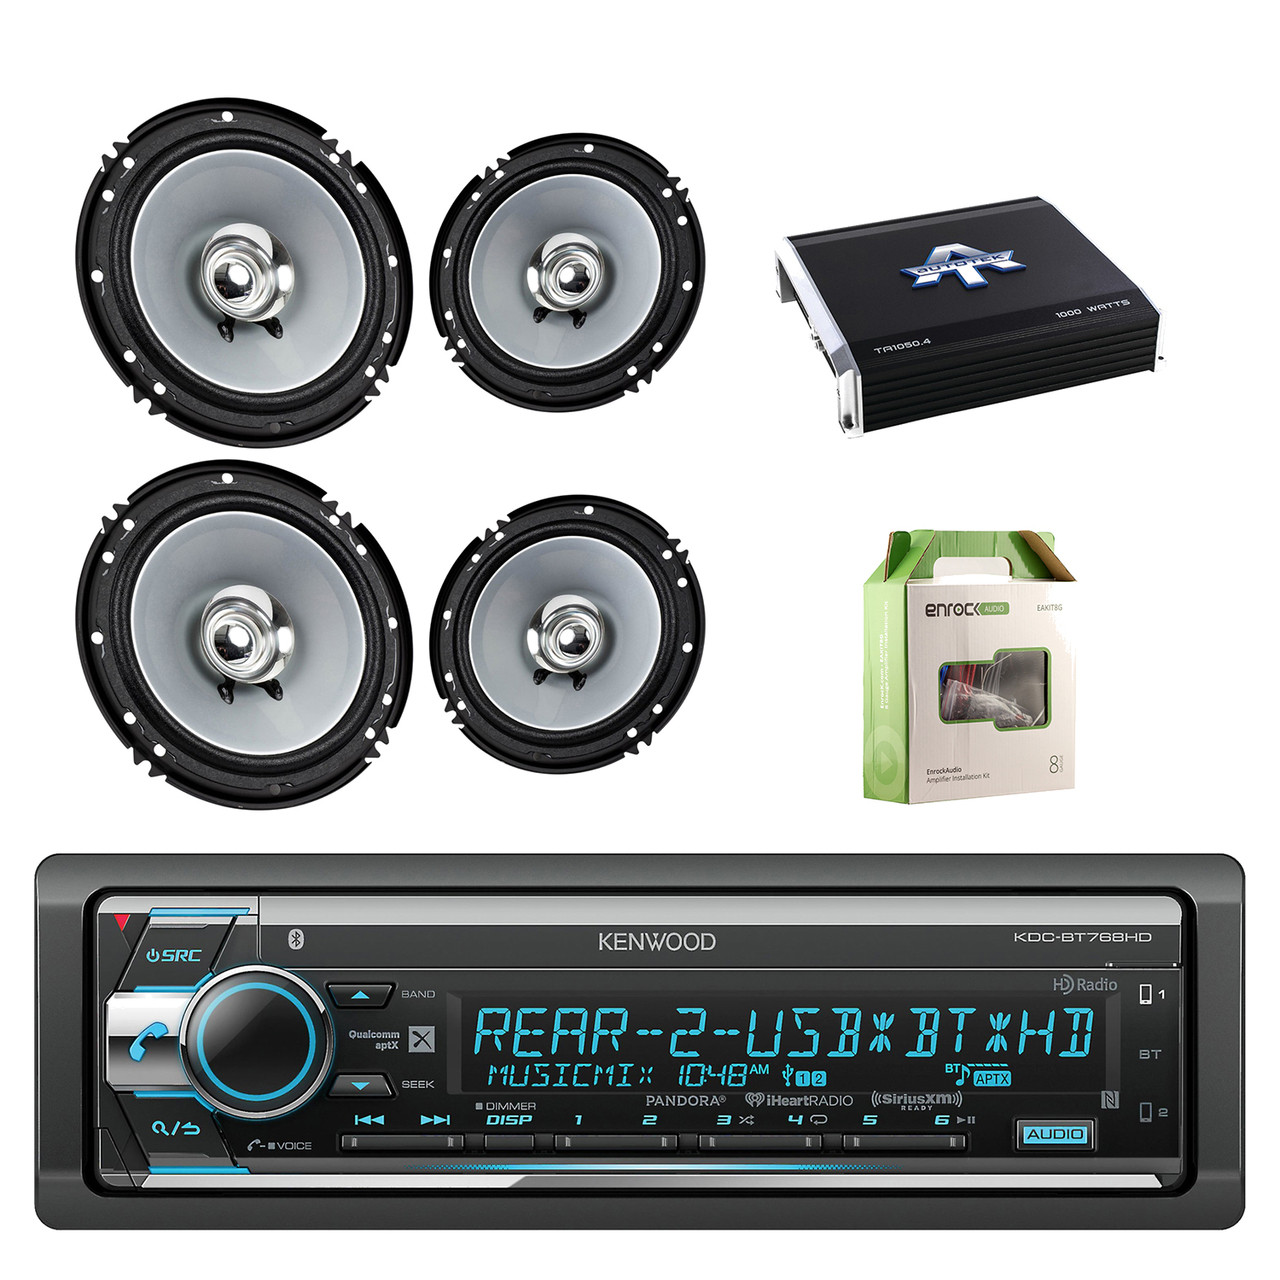 hight resolution of kenwood single din cd am fm car audio receiver w bluetooth with kenwood 6 5 inch 2 way 600 watts car audio coaxial speakers stereo 2 pairs